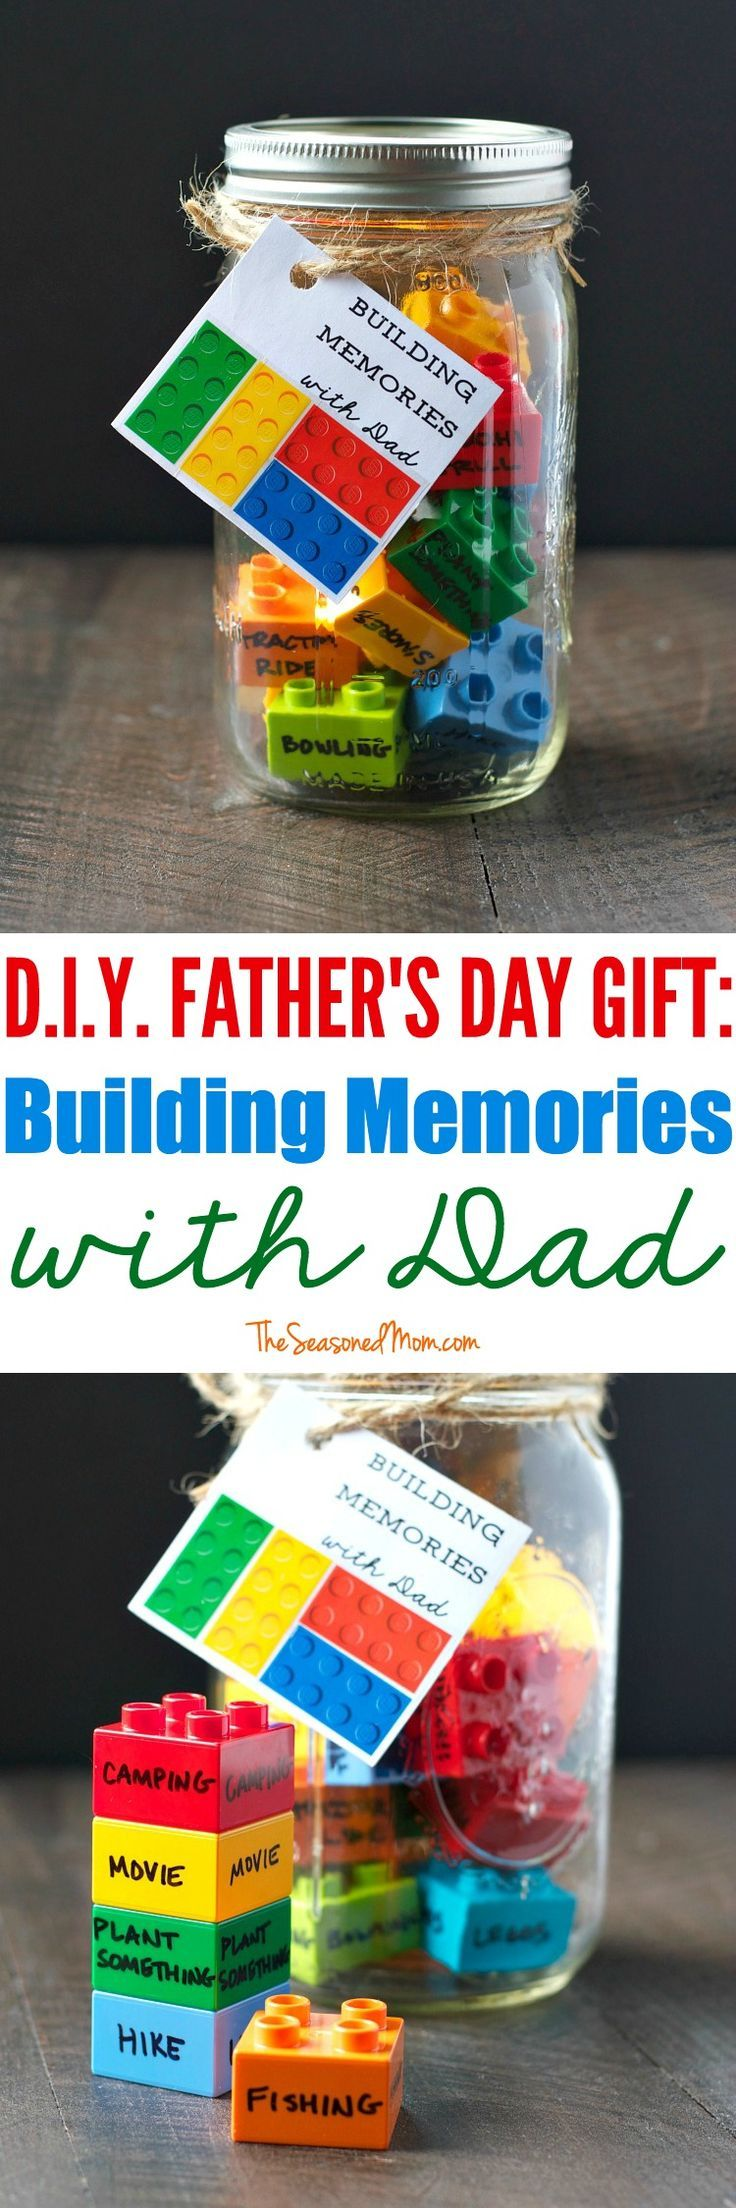 Nothing beats a homemade gift from the heart! Enjoy quality time together and create an easy DIY Father's Day Gift that will build memories to last a lifetime! /horizonorganic/ #ad HorizonOrganic #HorizonSnacks